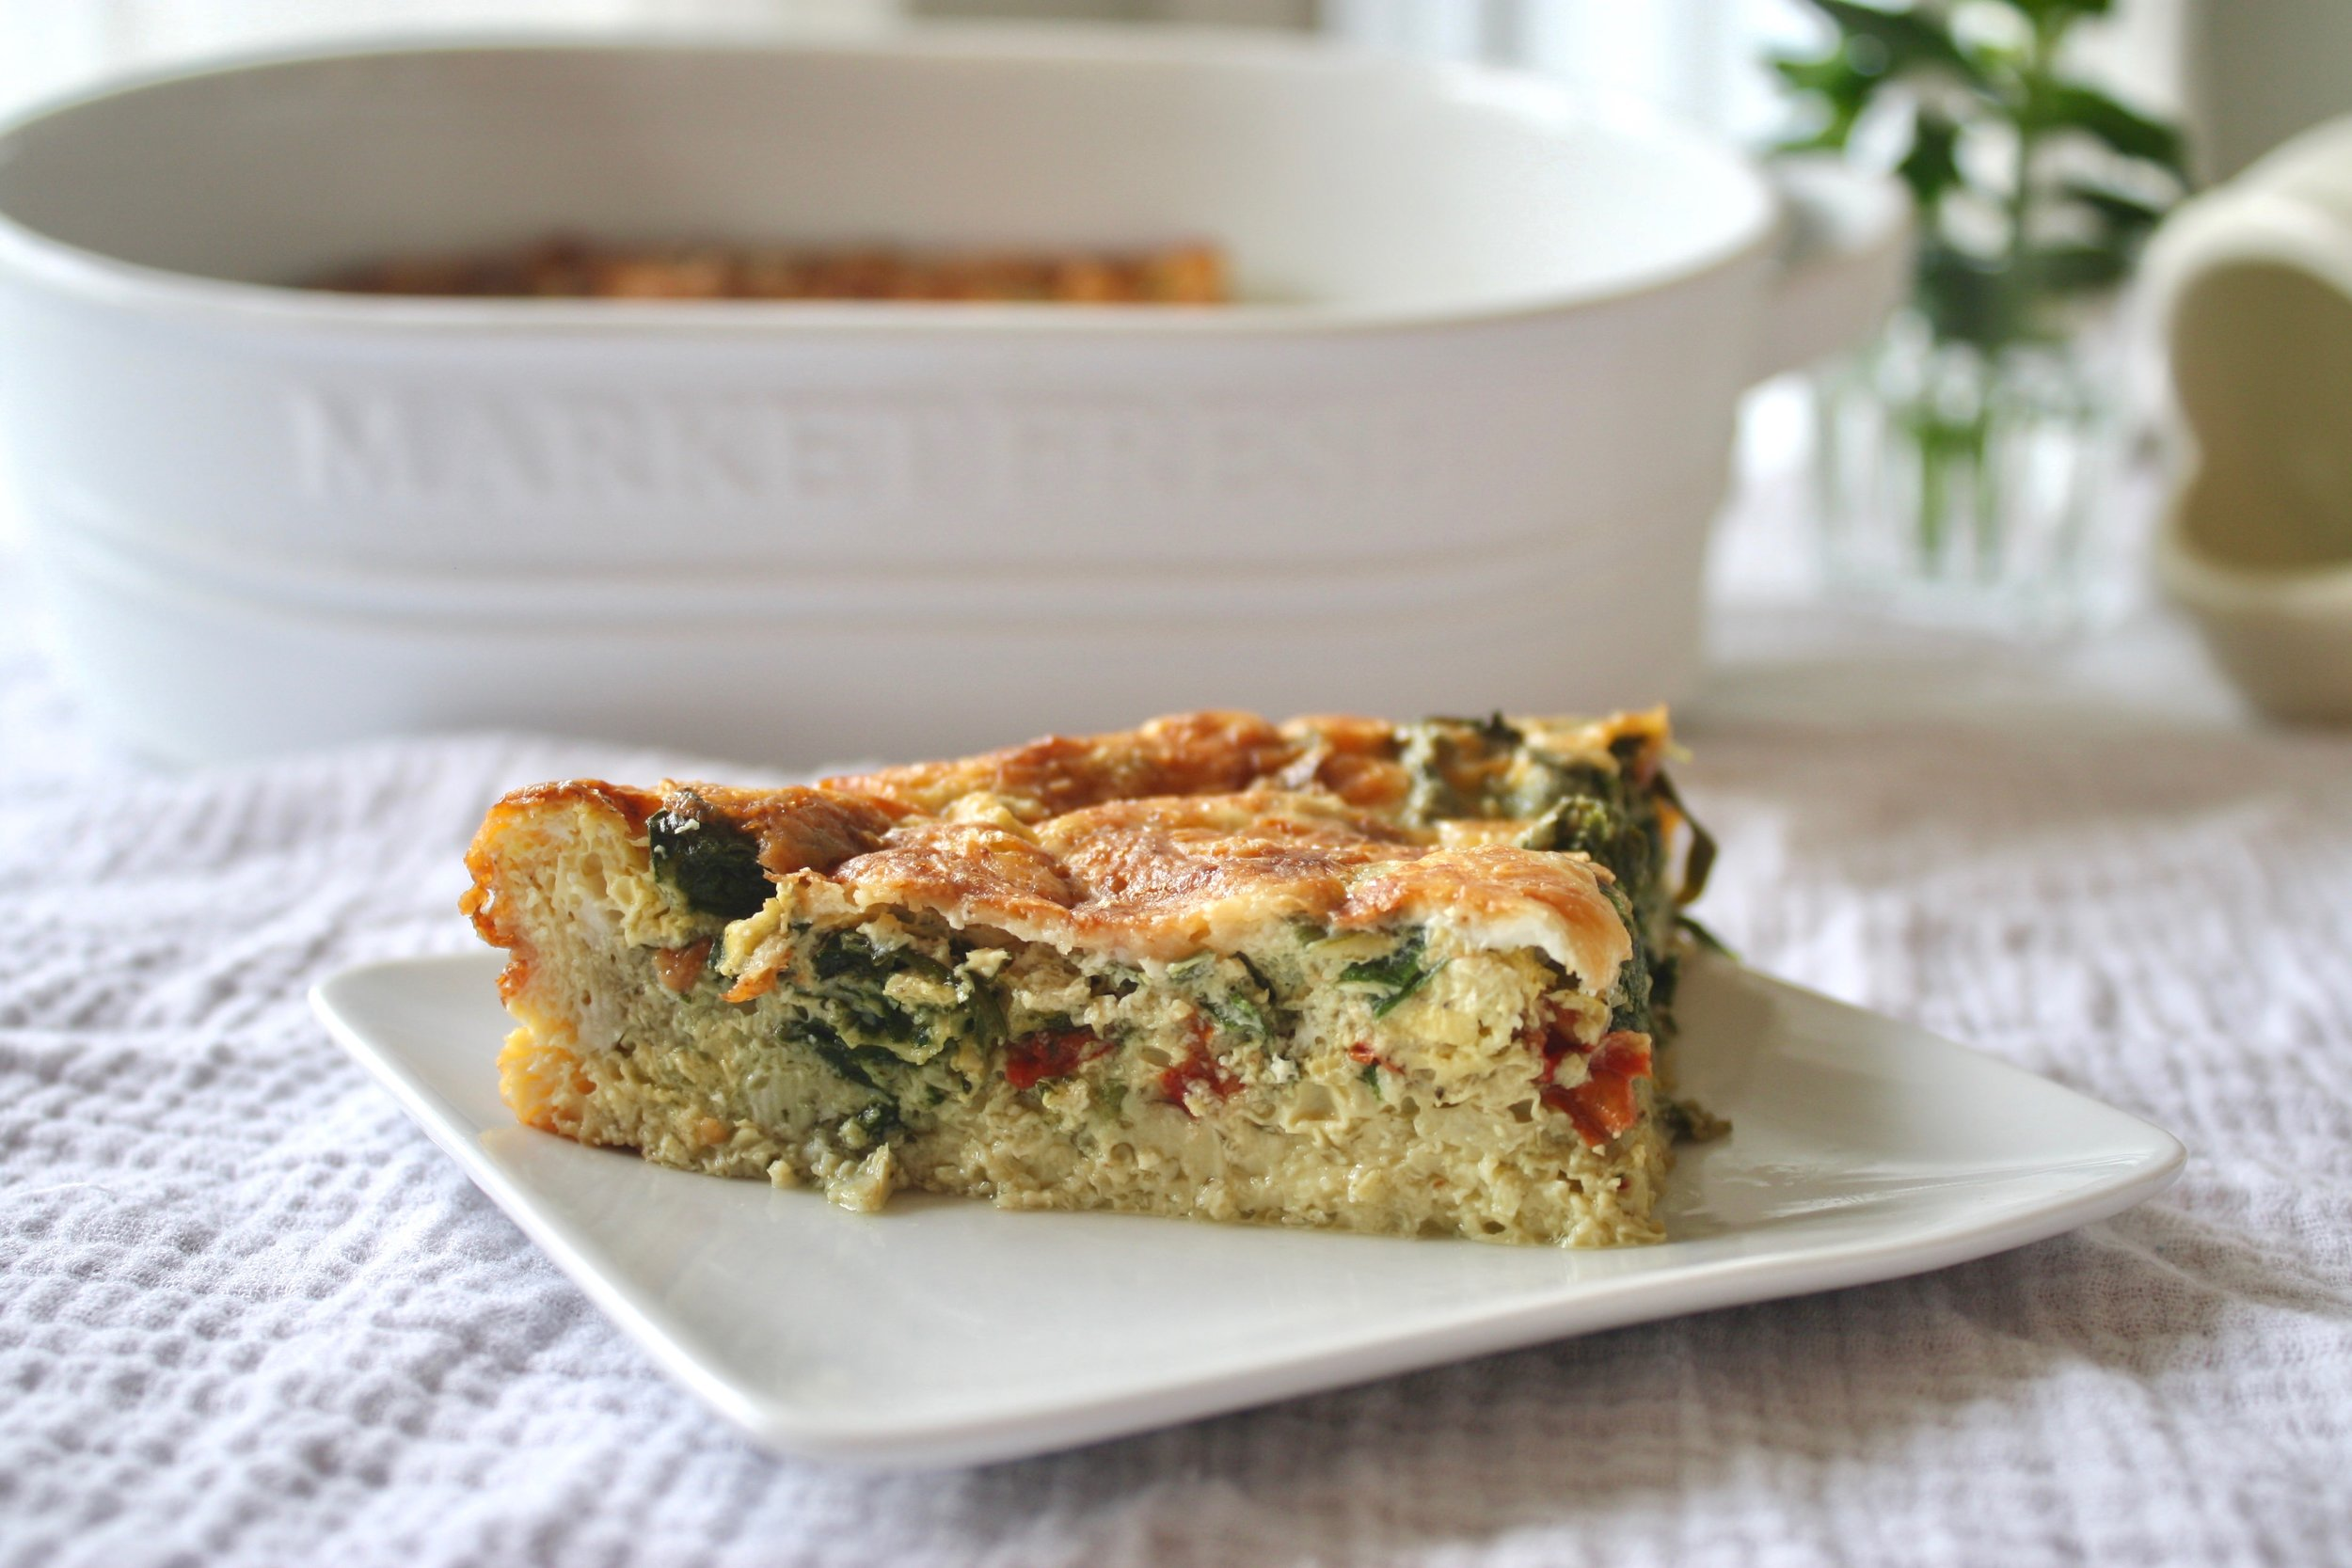 Red Pepper, Spinach and Cheddar Egg Frittata